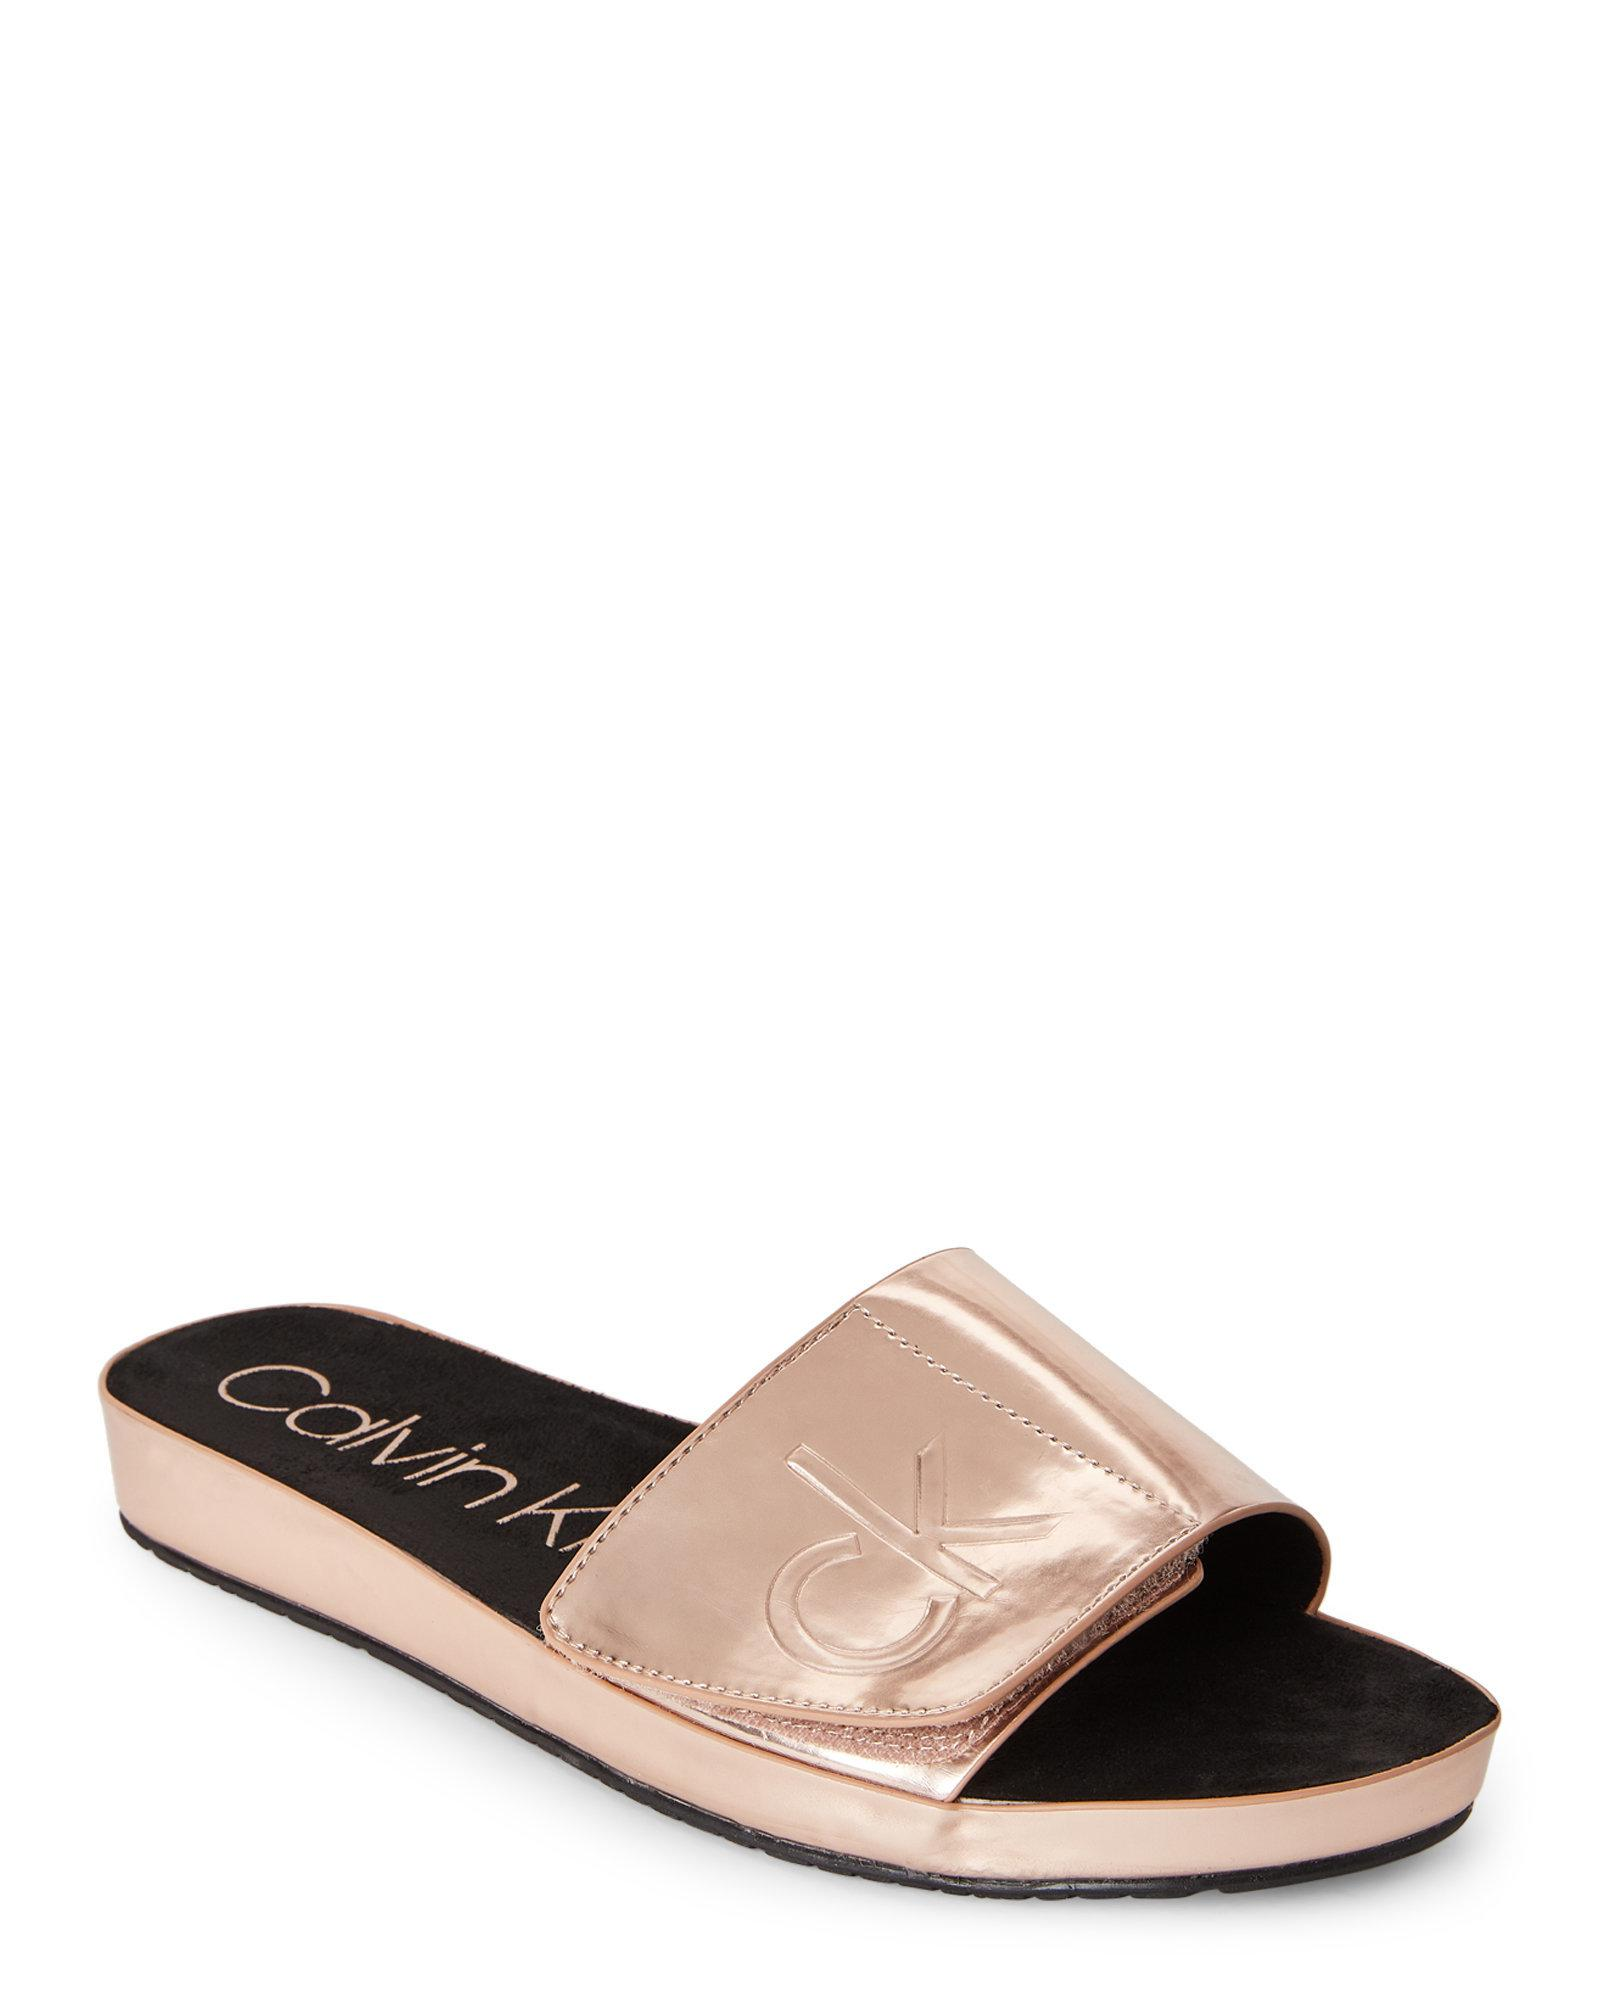 7cb580116bff8 CALVIN KLEIN 205W39NYC Rose Gold Marlina Metallic Slide Sandals